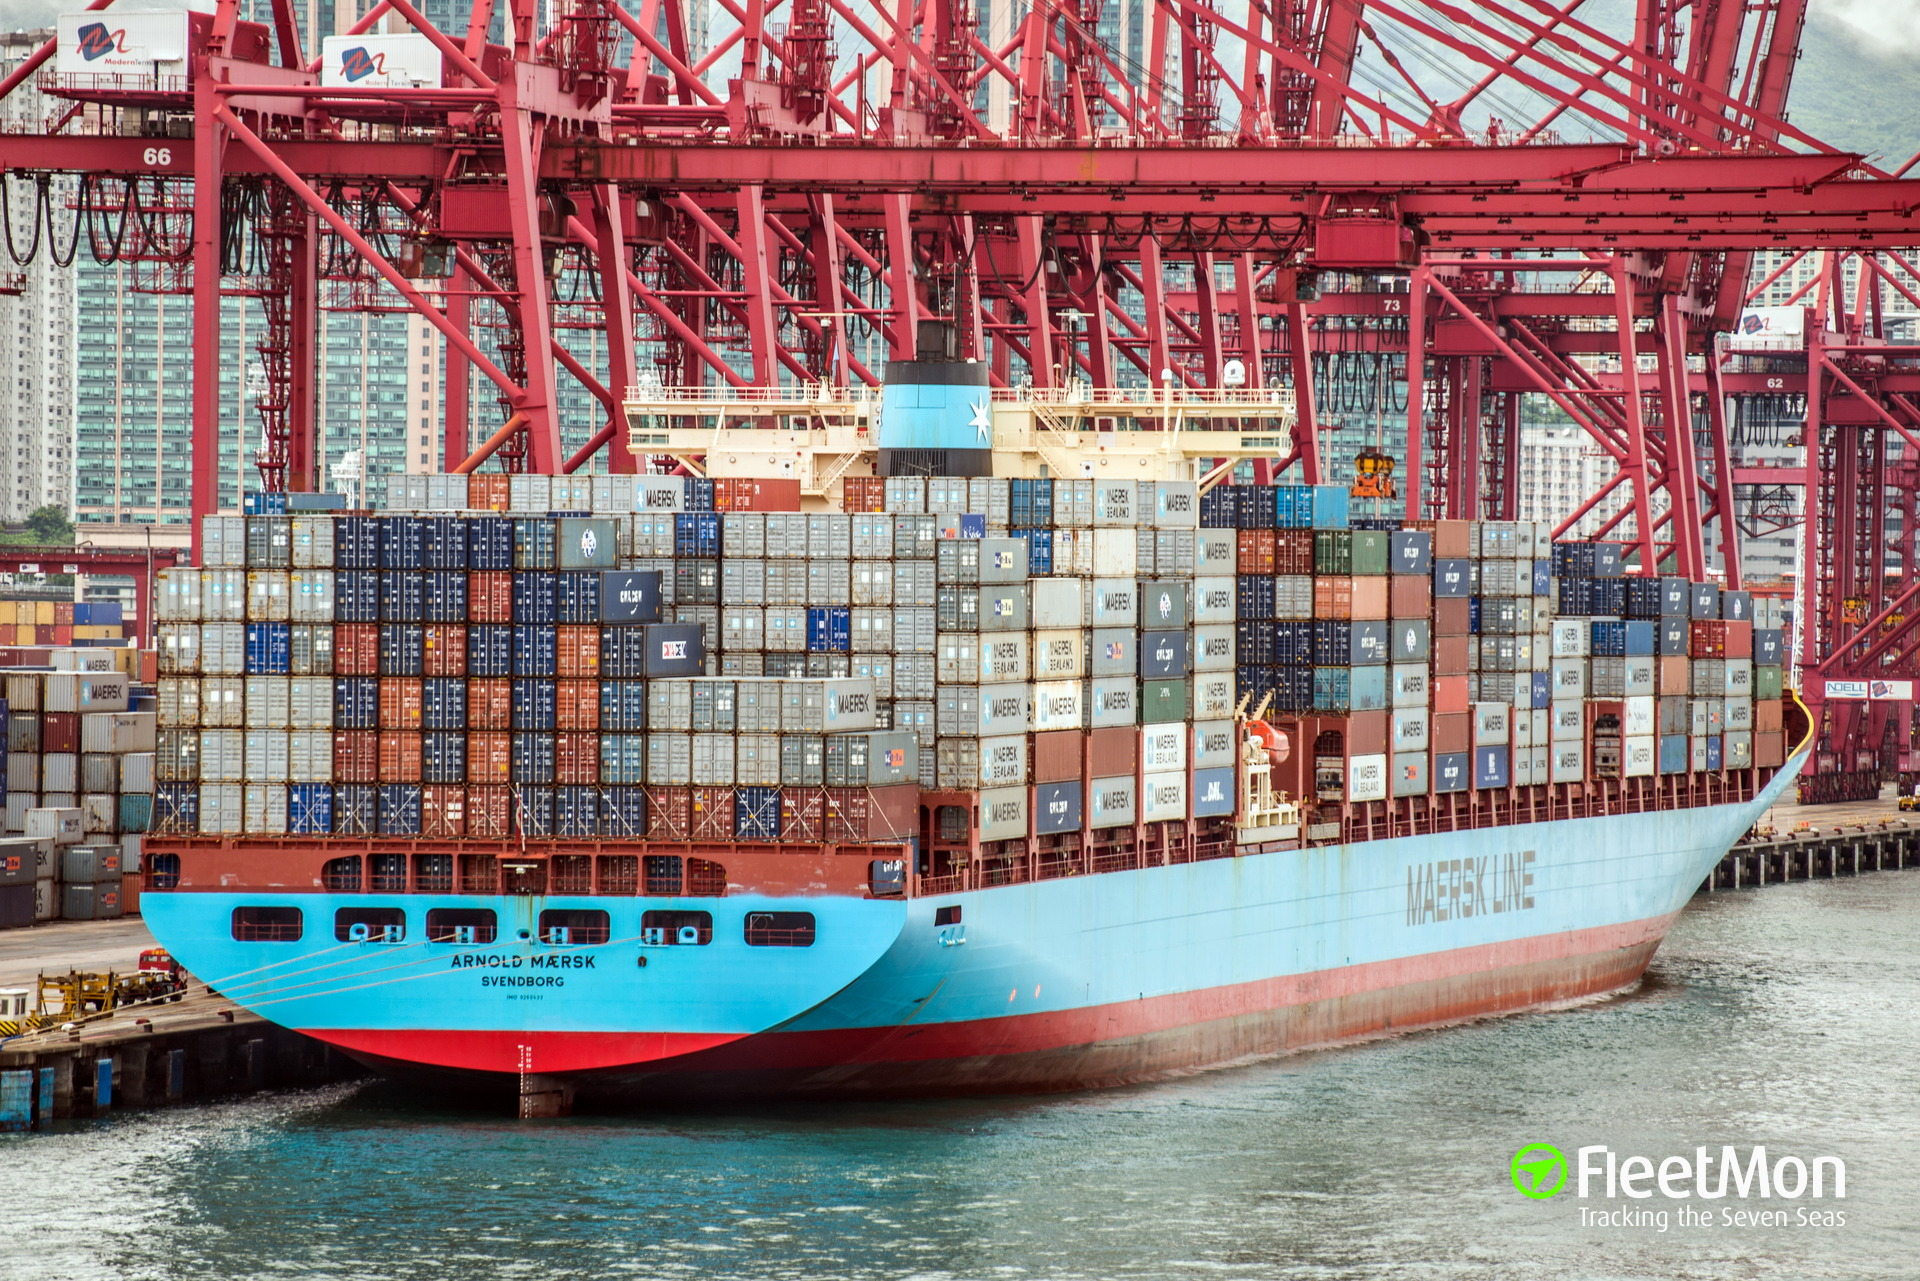 Container ship ARNOLD MAERSK lost 18 containers